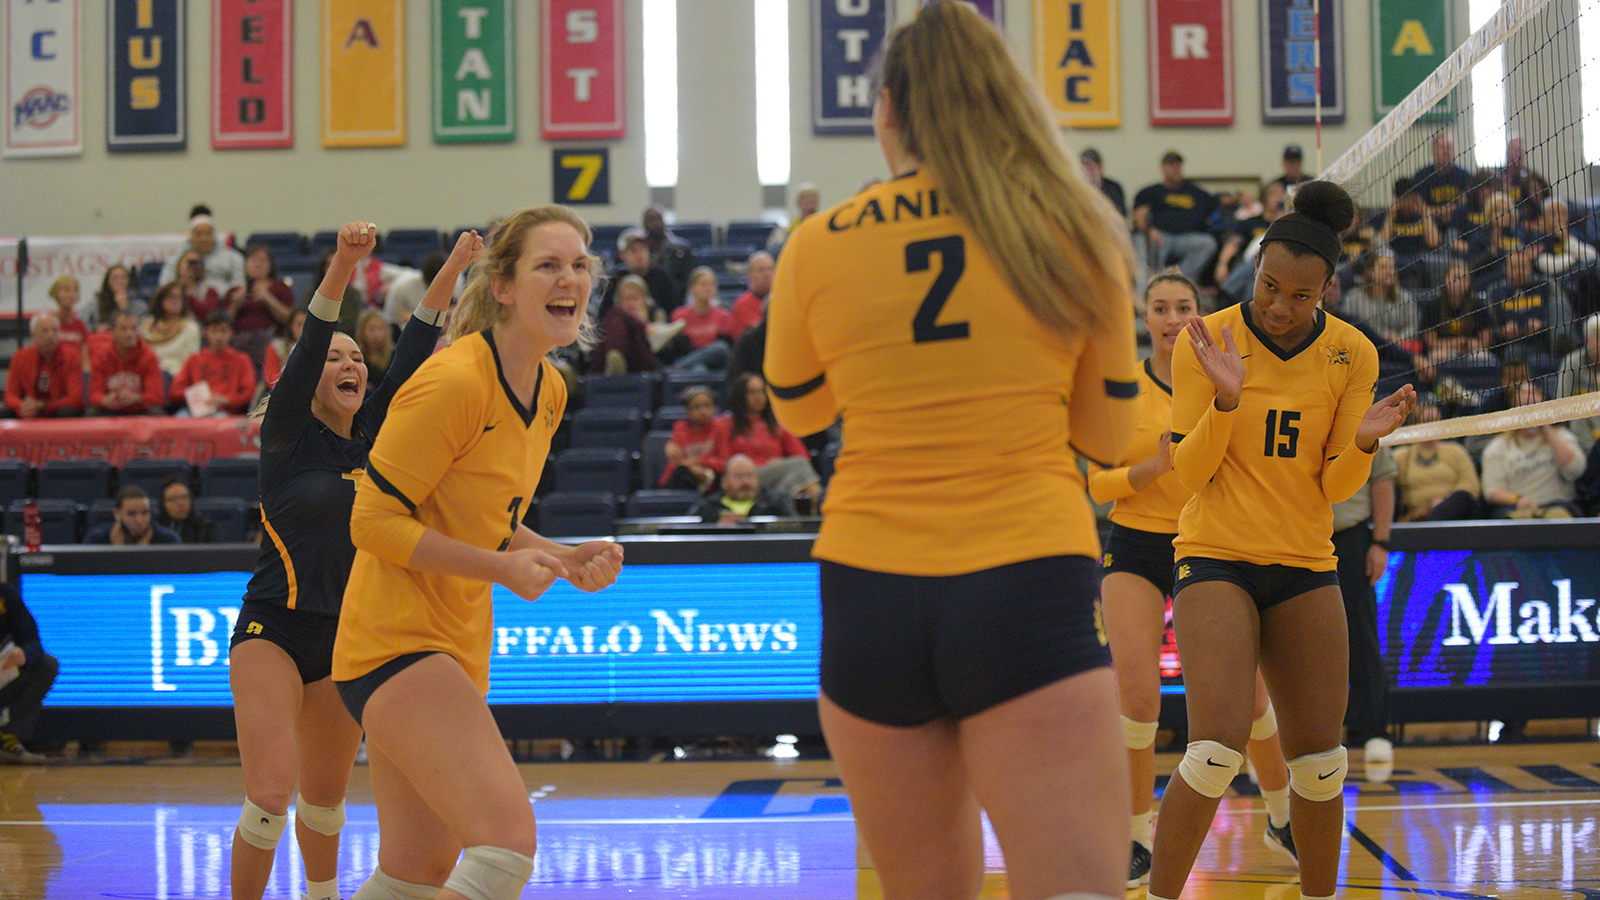 Allyson Is Watching 1997 volleyball's 3-2 win ends fairfield's win streak - canisius